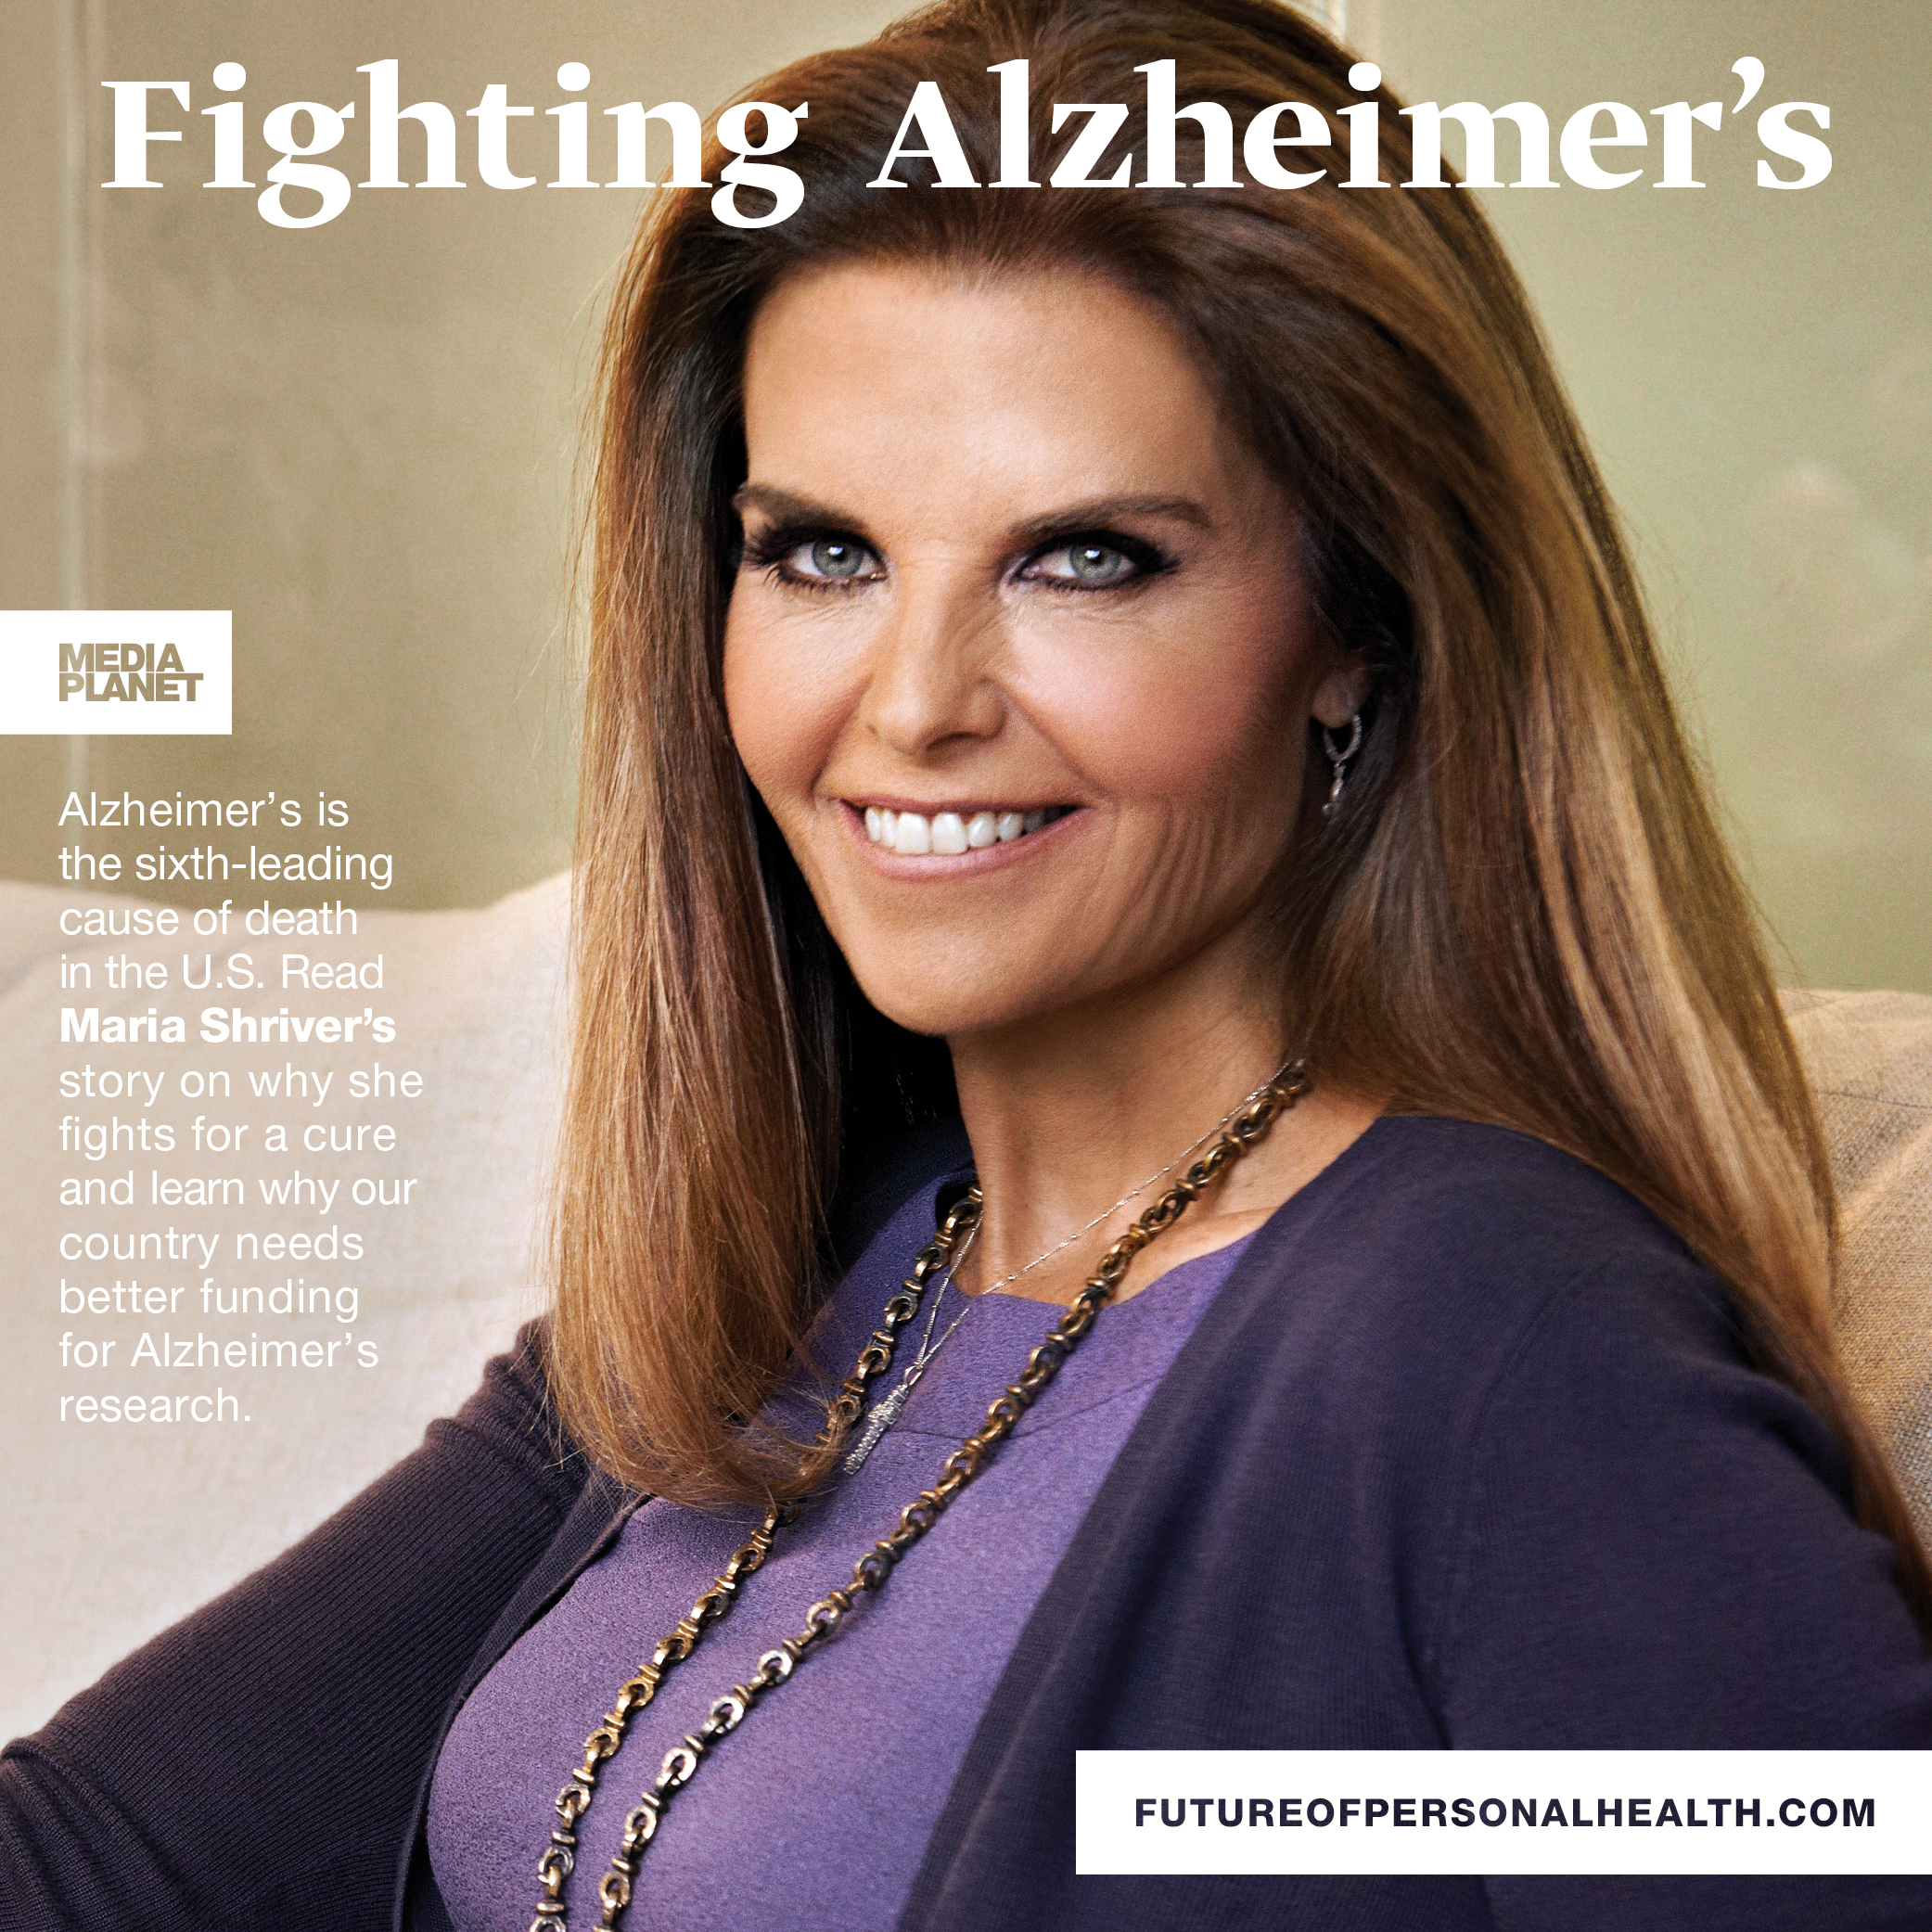 maria-shriver-media-planet-112816-campaigncovershareable